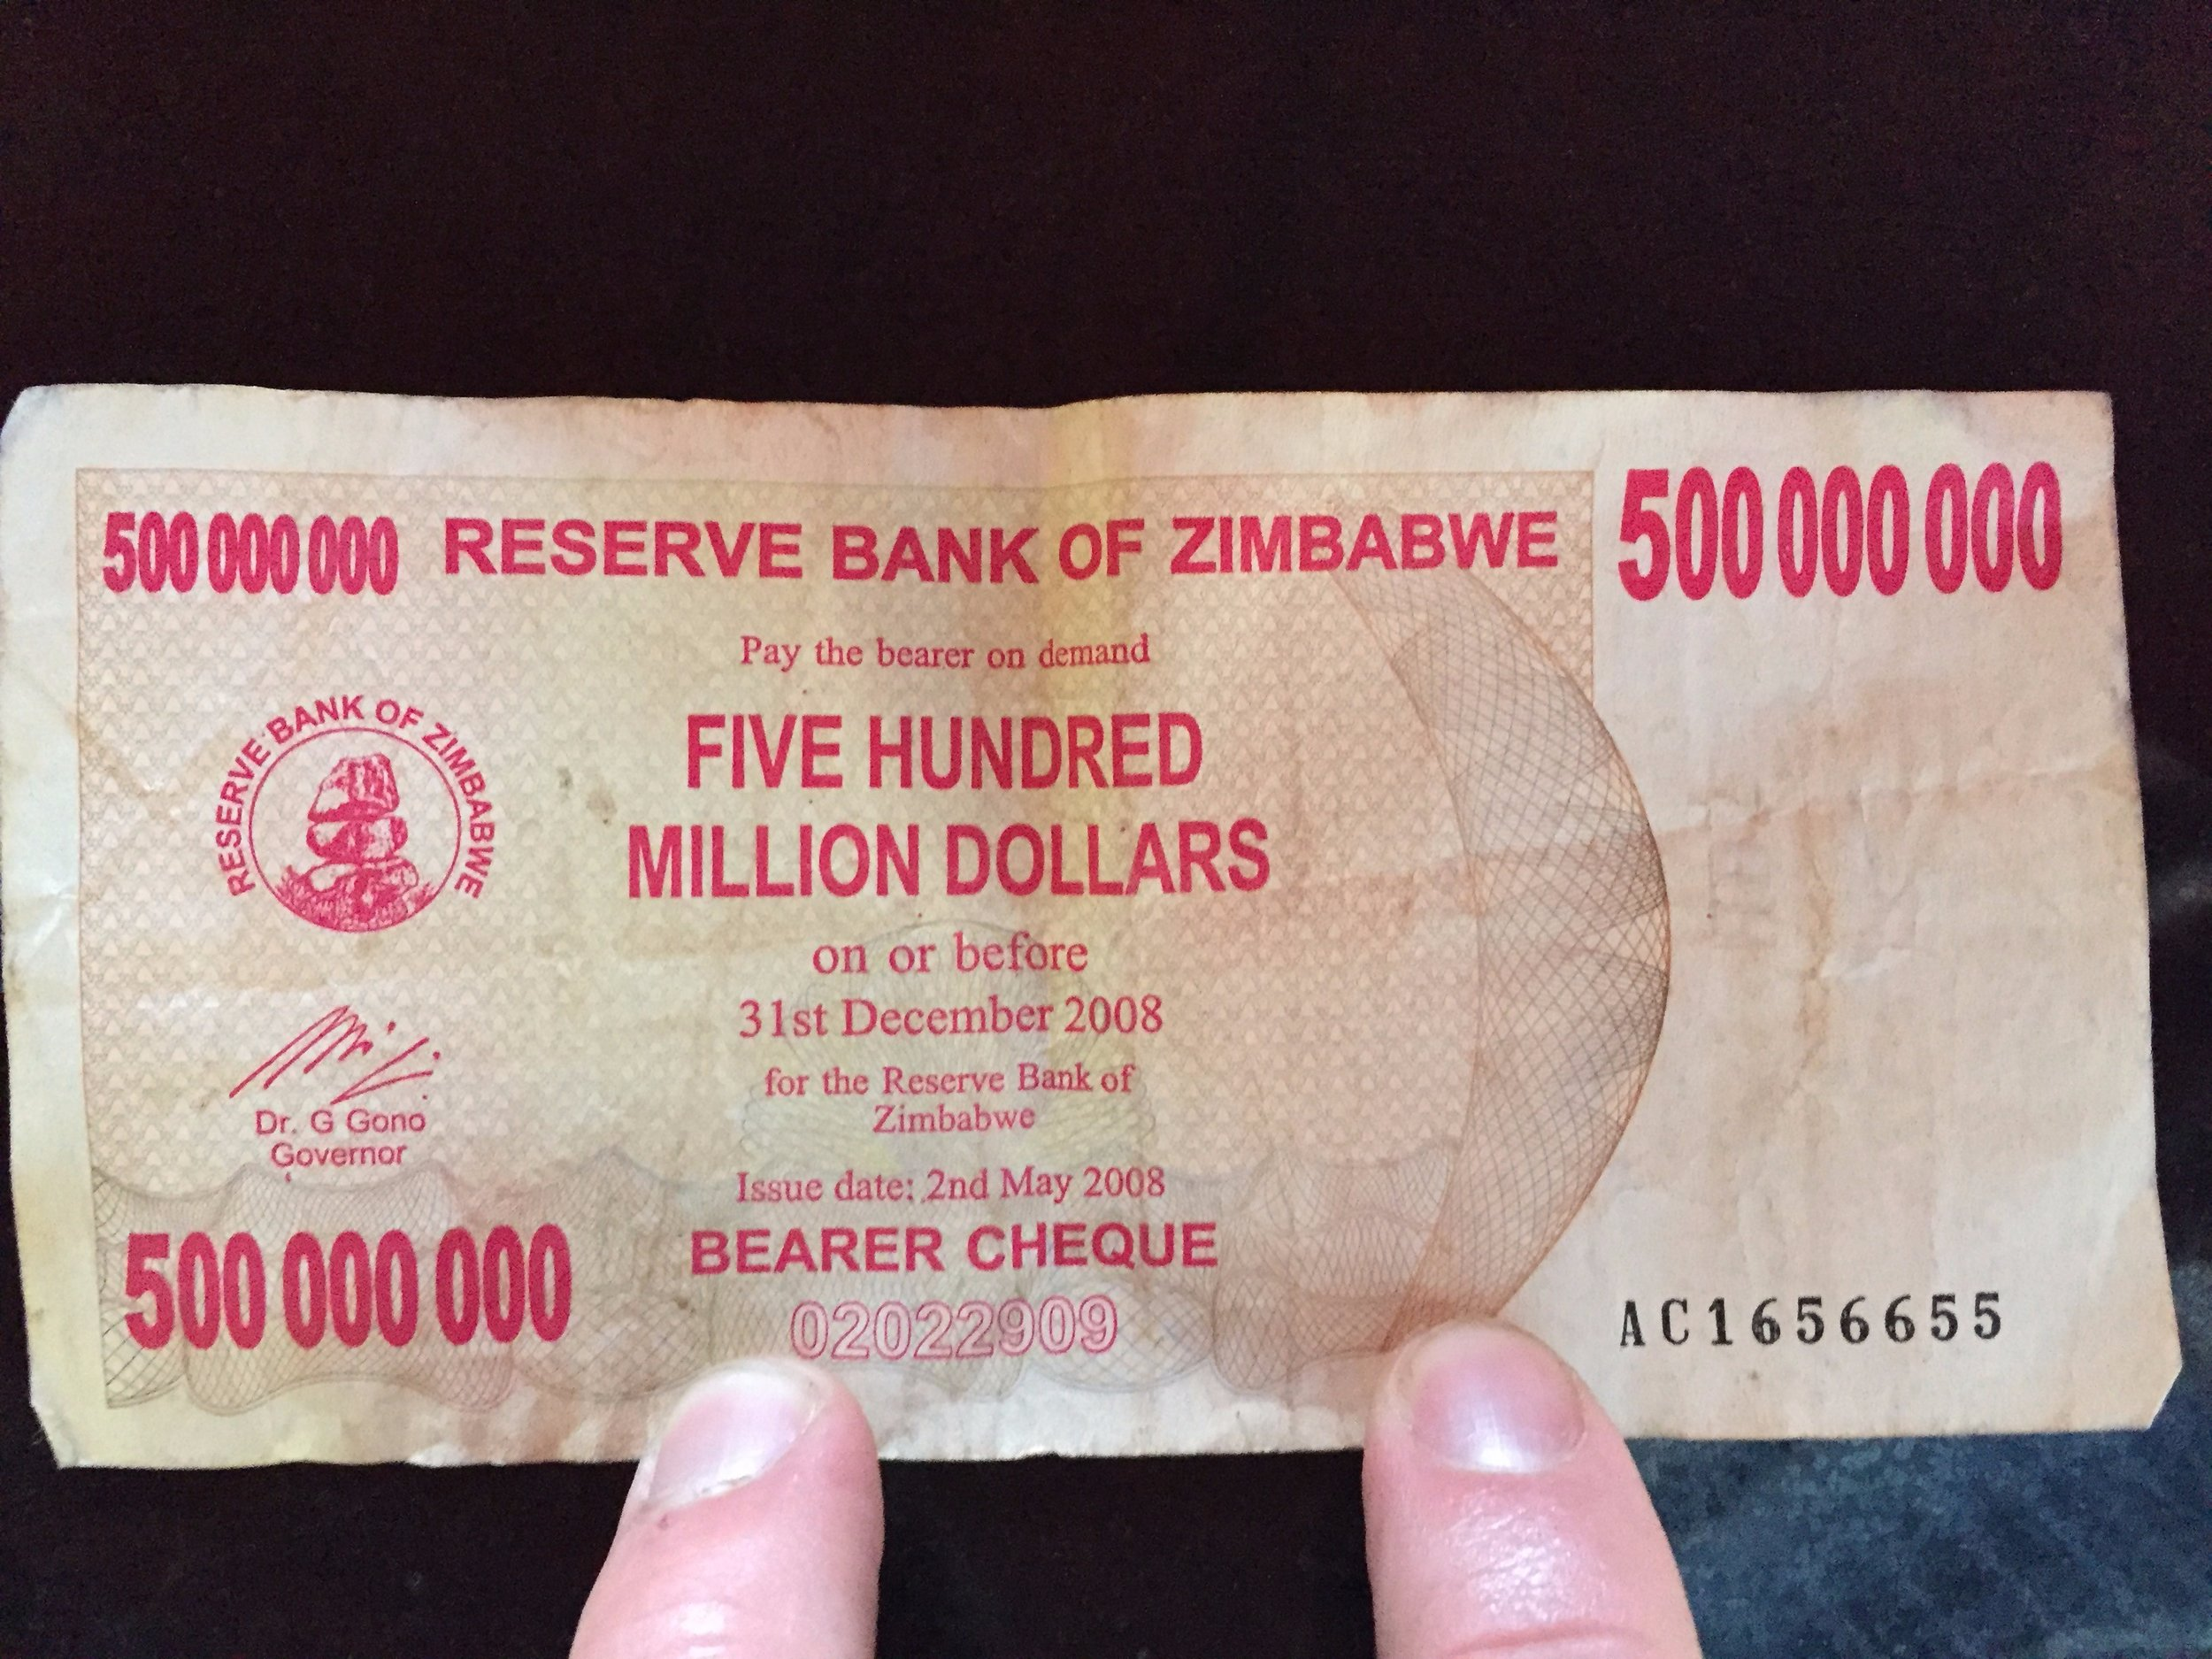 One nifty keepsake you can buy from almost anyone in Zimbabwe is their discontinued currency, the Zimbabwean Dollar,which due to hyperinflation was at one point denominated in the hundreds of billions.